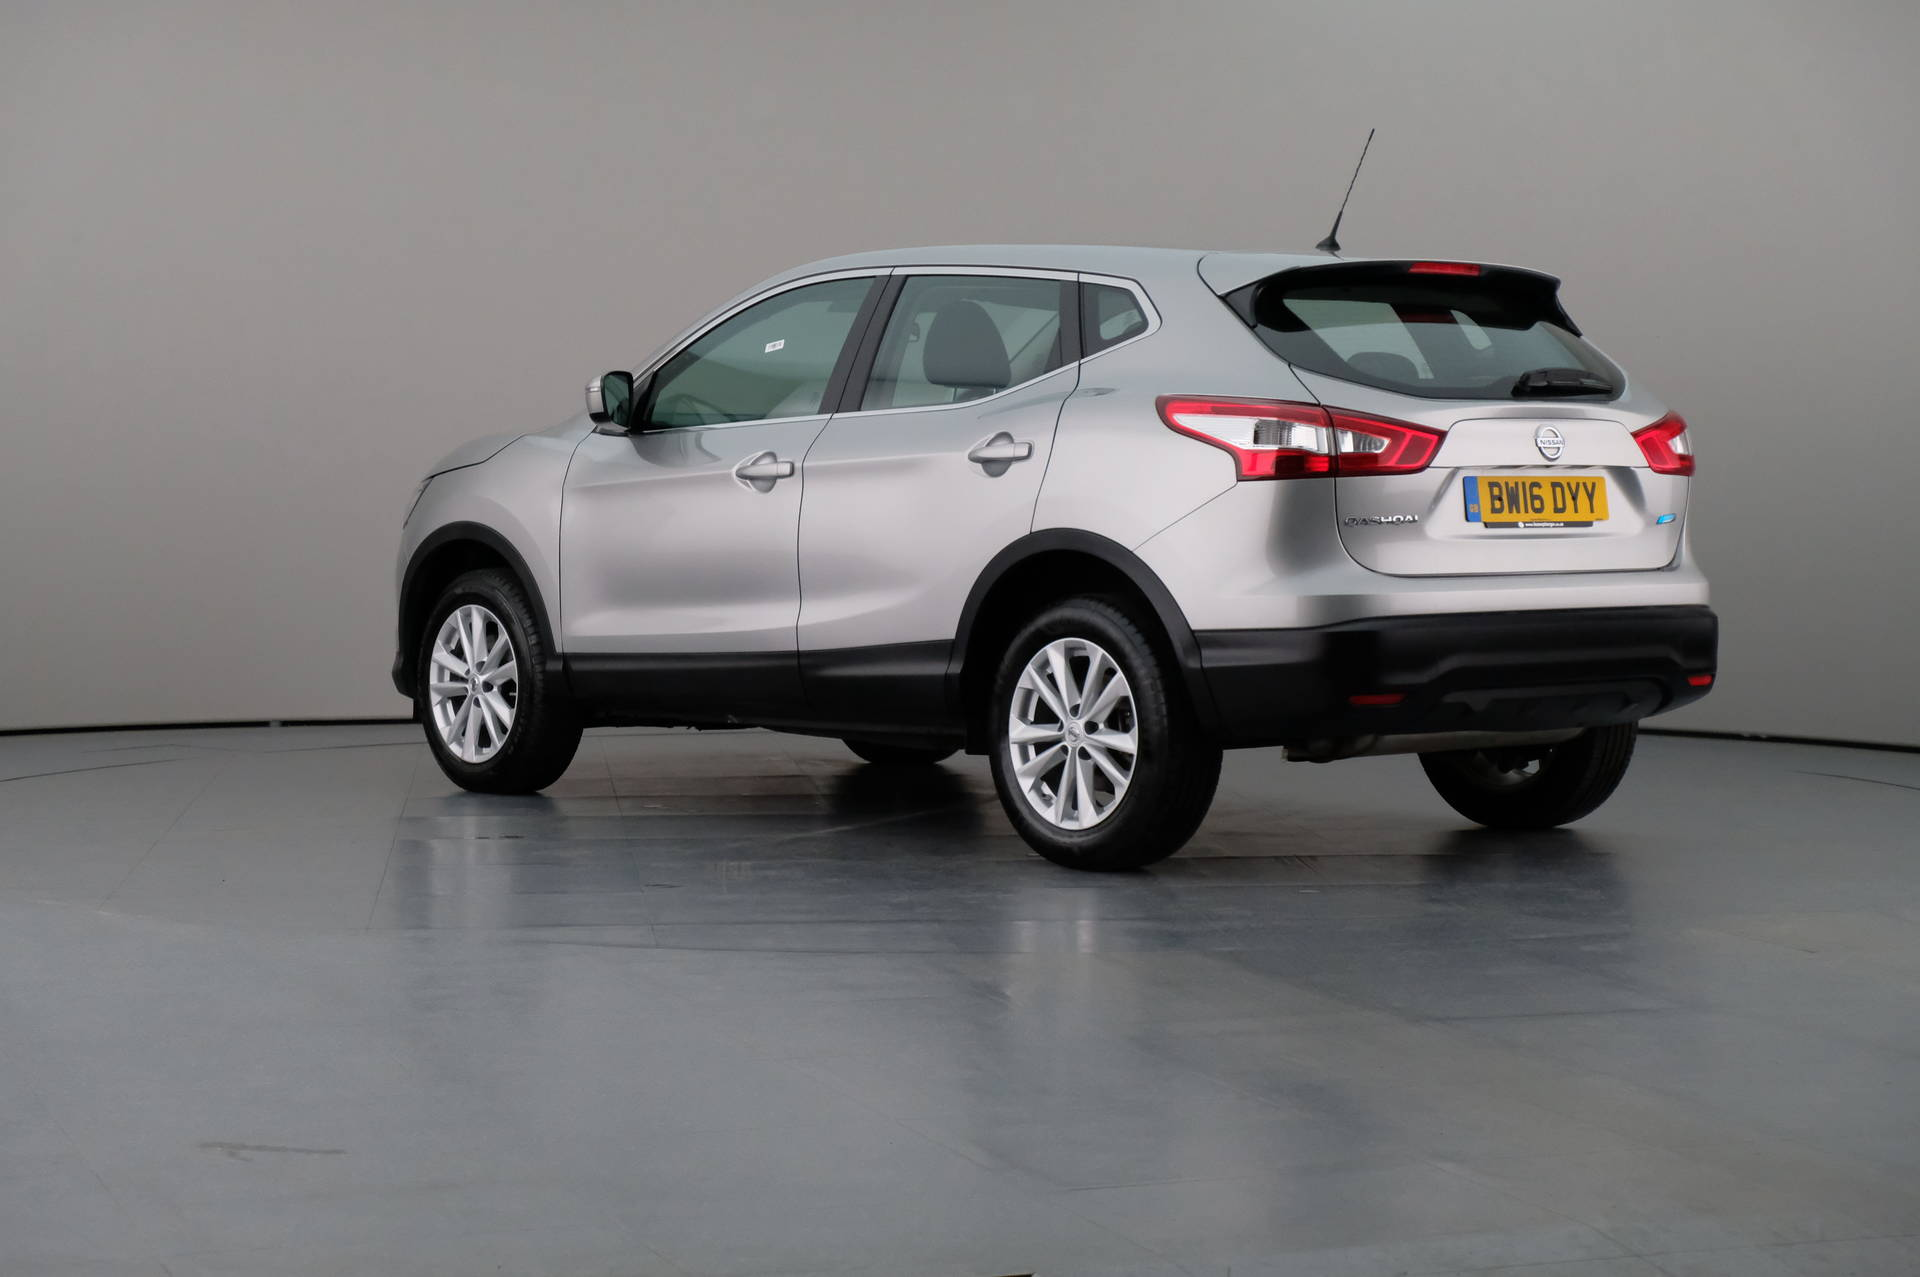 Nissan Qashqai 15 Dci Fuel Filter Change Recomended Car Juke Location 1 5 Acenta 5dr Cars 2016 Used Carnext Com